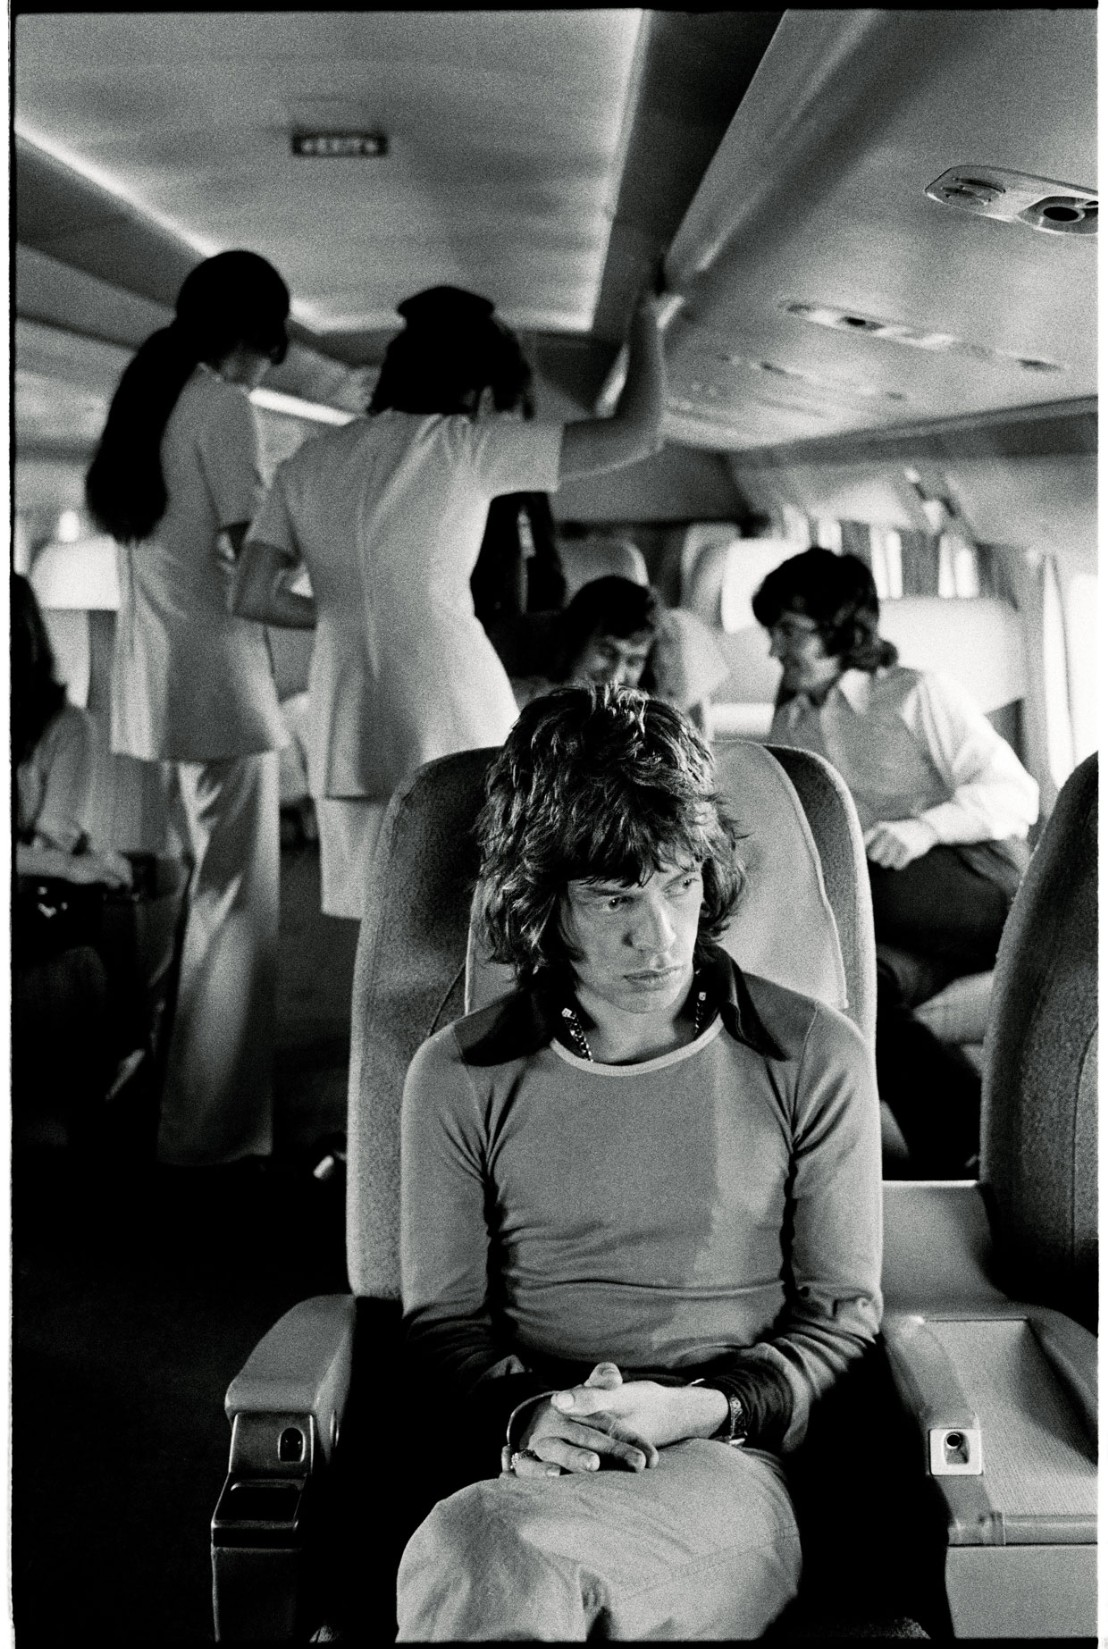 Mick Jagger on a plane to Southern California, 1972